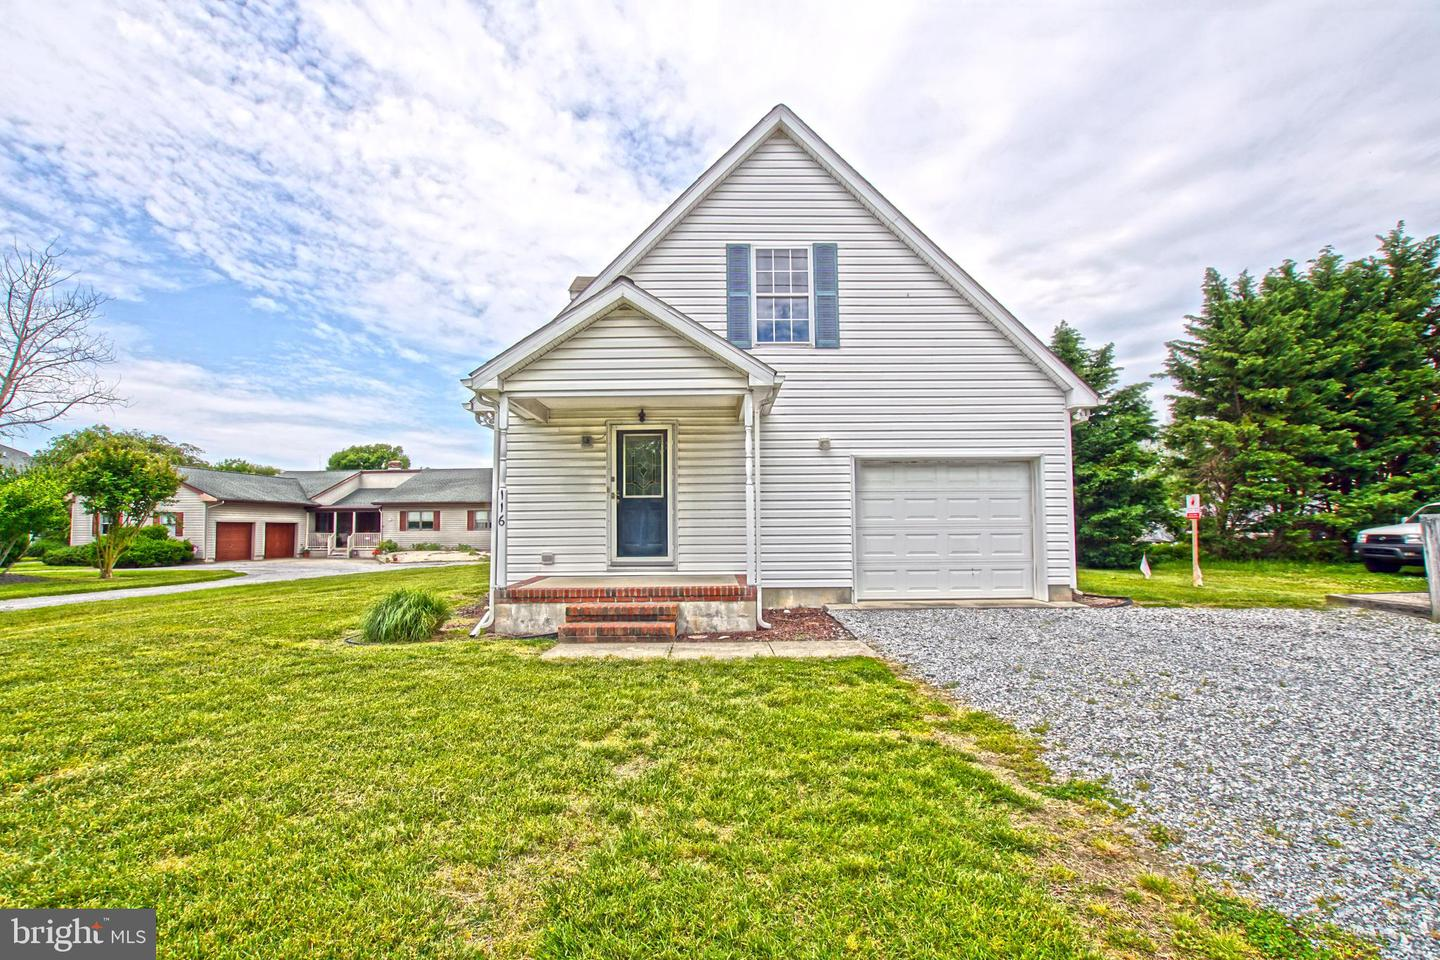 DESU140726-301728976519-2019-06-28-14-08-41 116 New Rd | Lewes, DE Real Estate For Sale | MLS# Desu140726  - Lee Ann Group